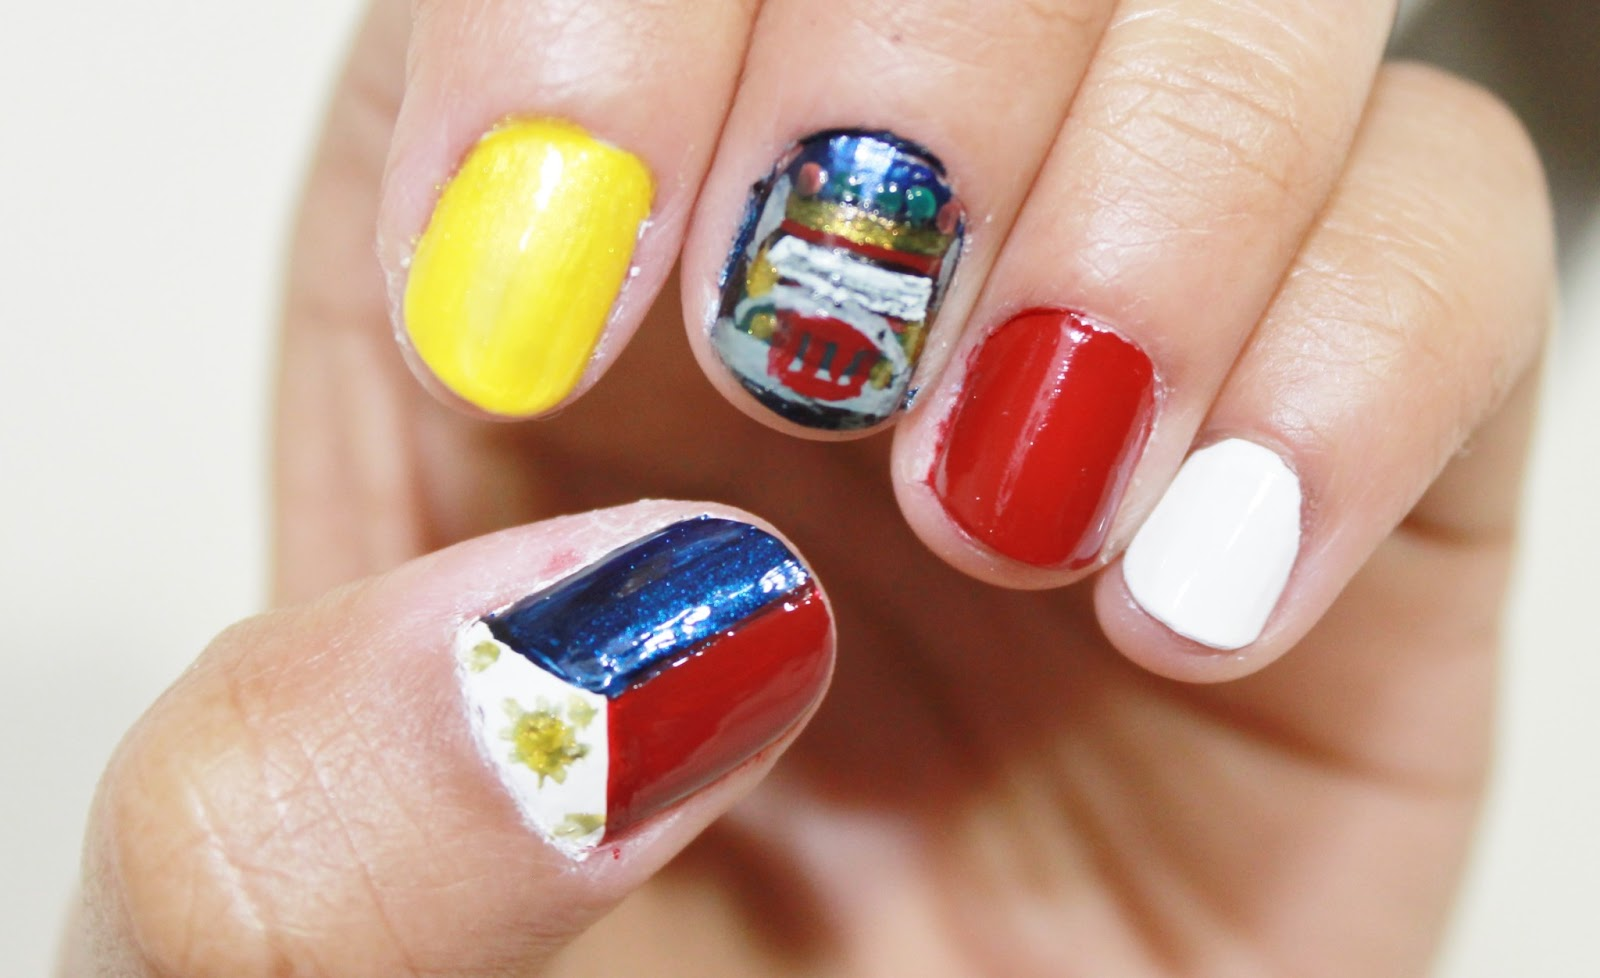 Blendblush Philippines Flag And Jeepney Nail Art